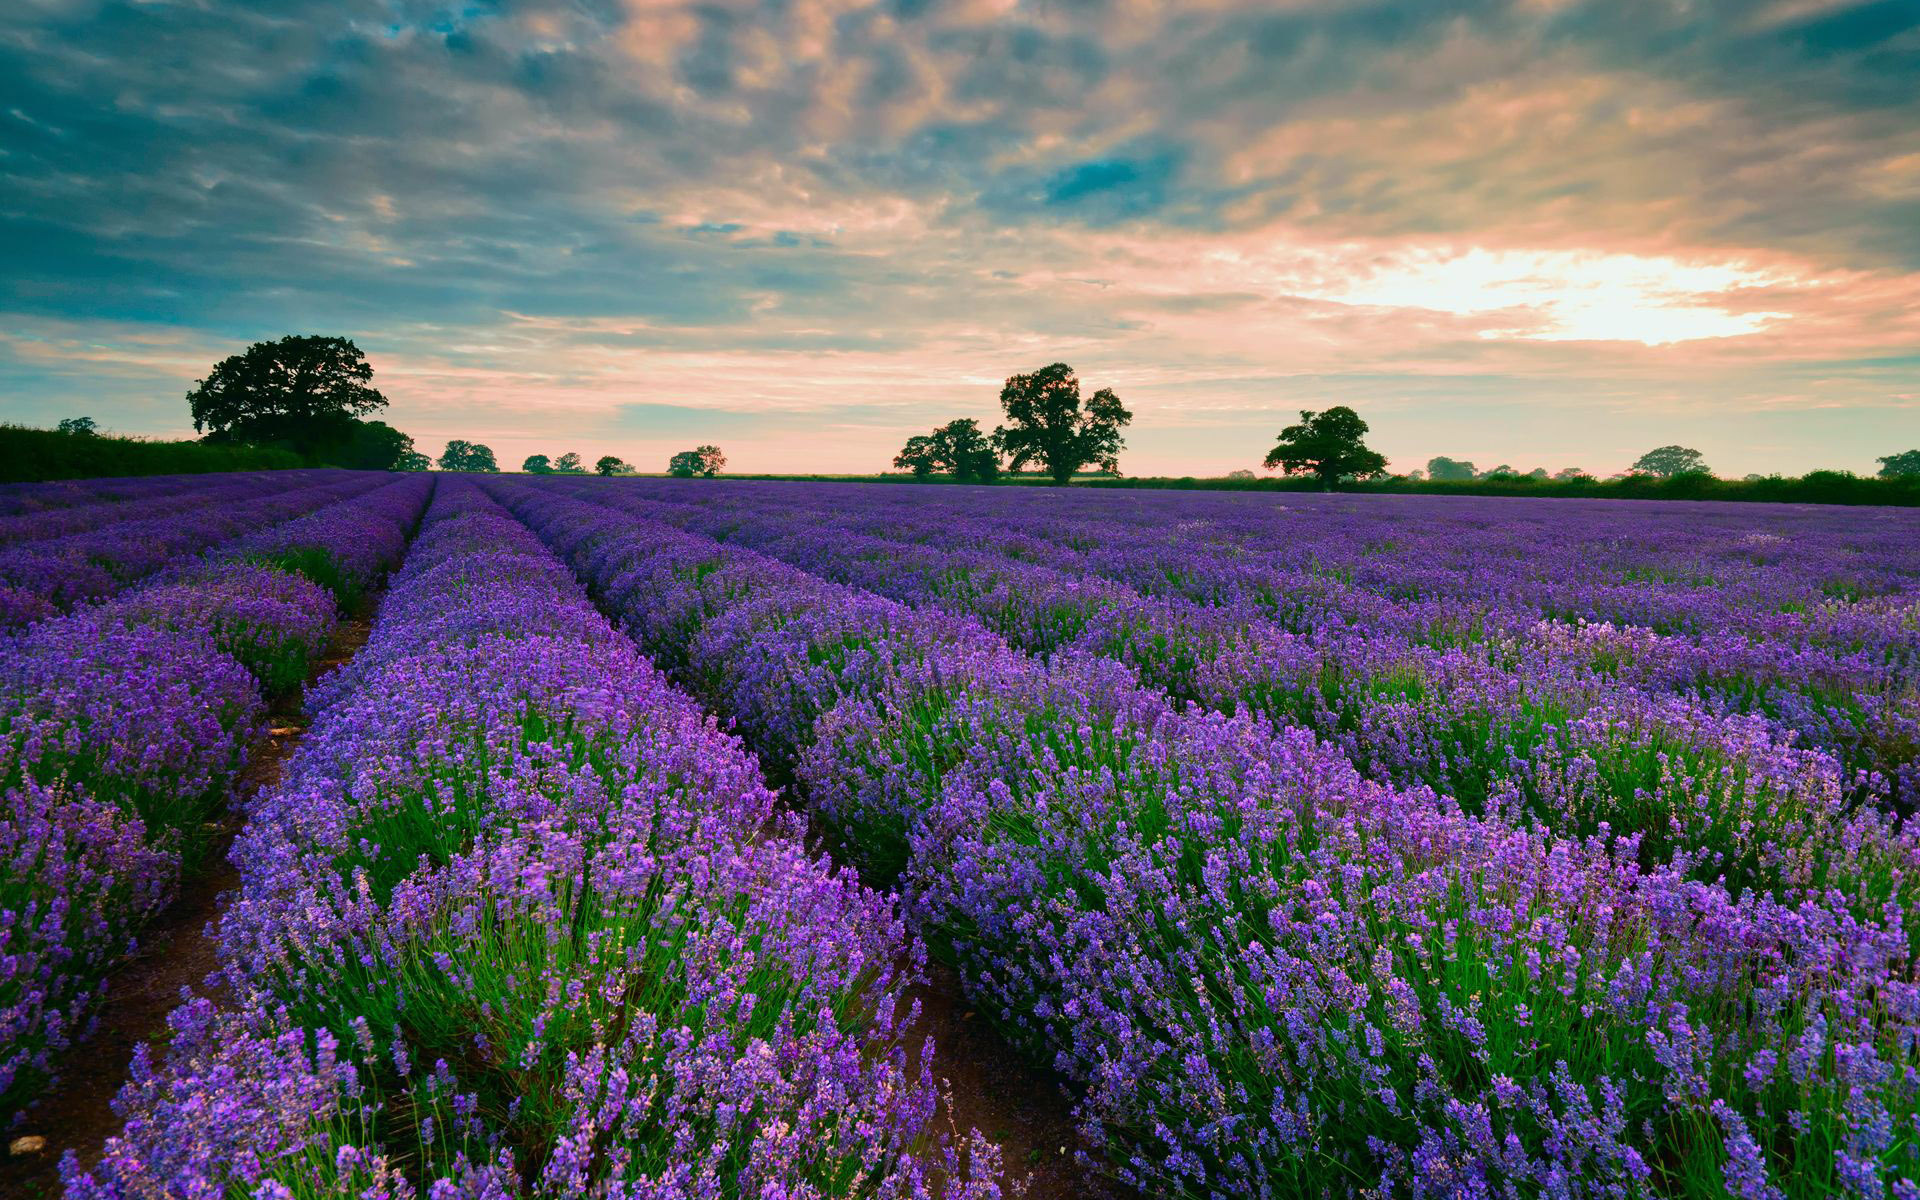 Purple fields of lavender wallpaper 16979 1920x1200